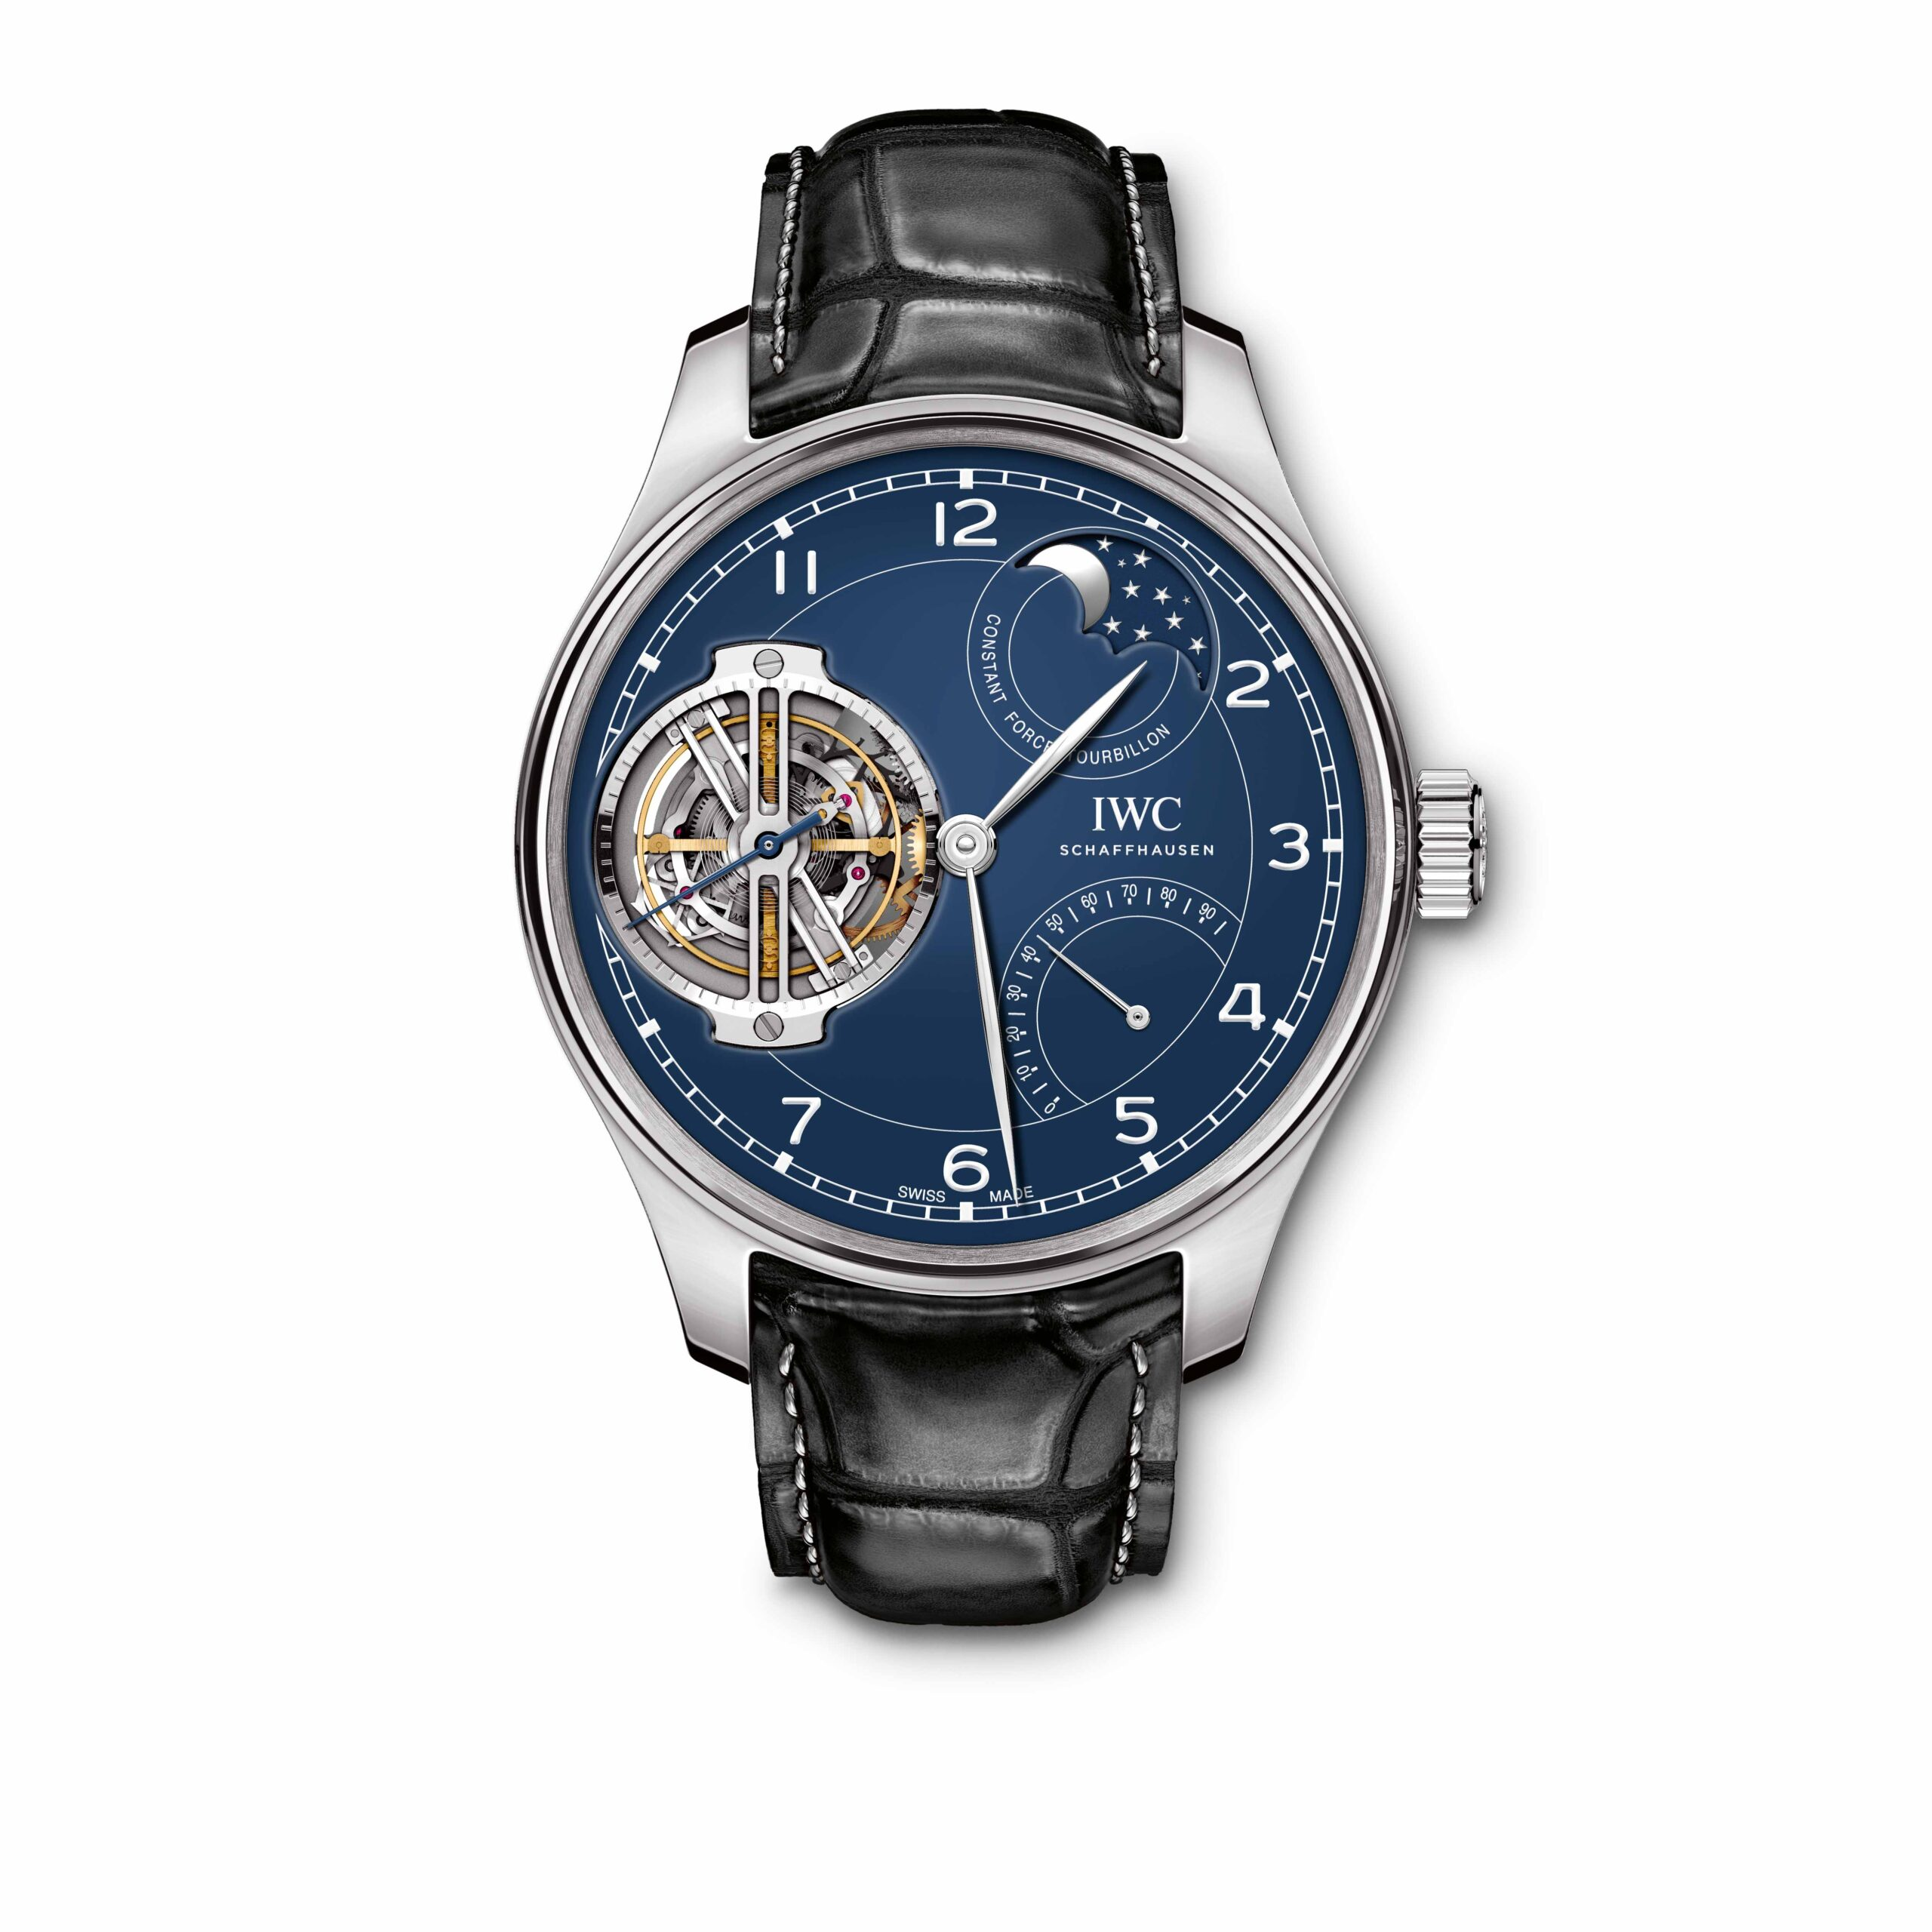 "IWC Portugieser Constant-Force Tourbillon Edition ""150 Years"" (Ref. 5902) Platinum, blue dial with lacquered  nish, rhodium-plated hands"